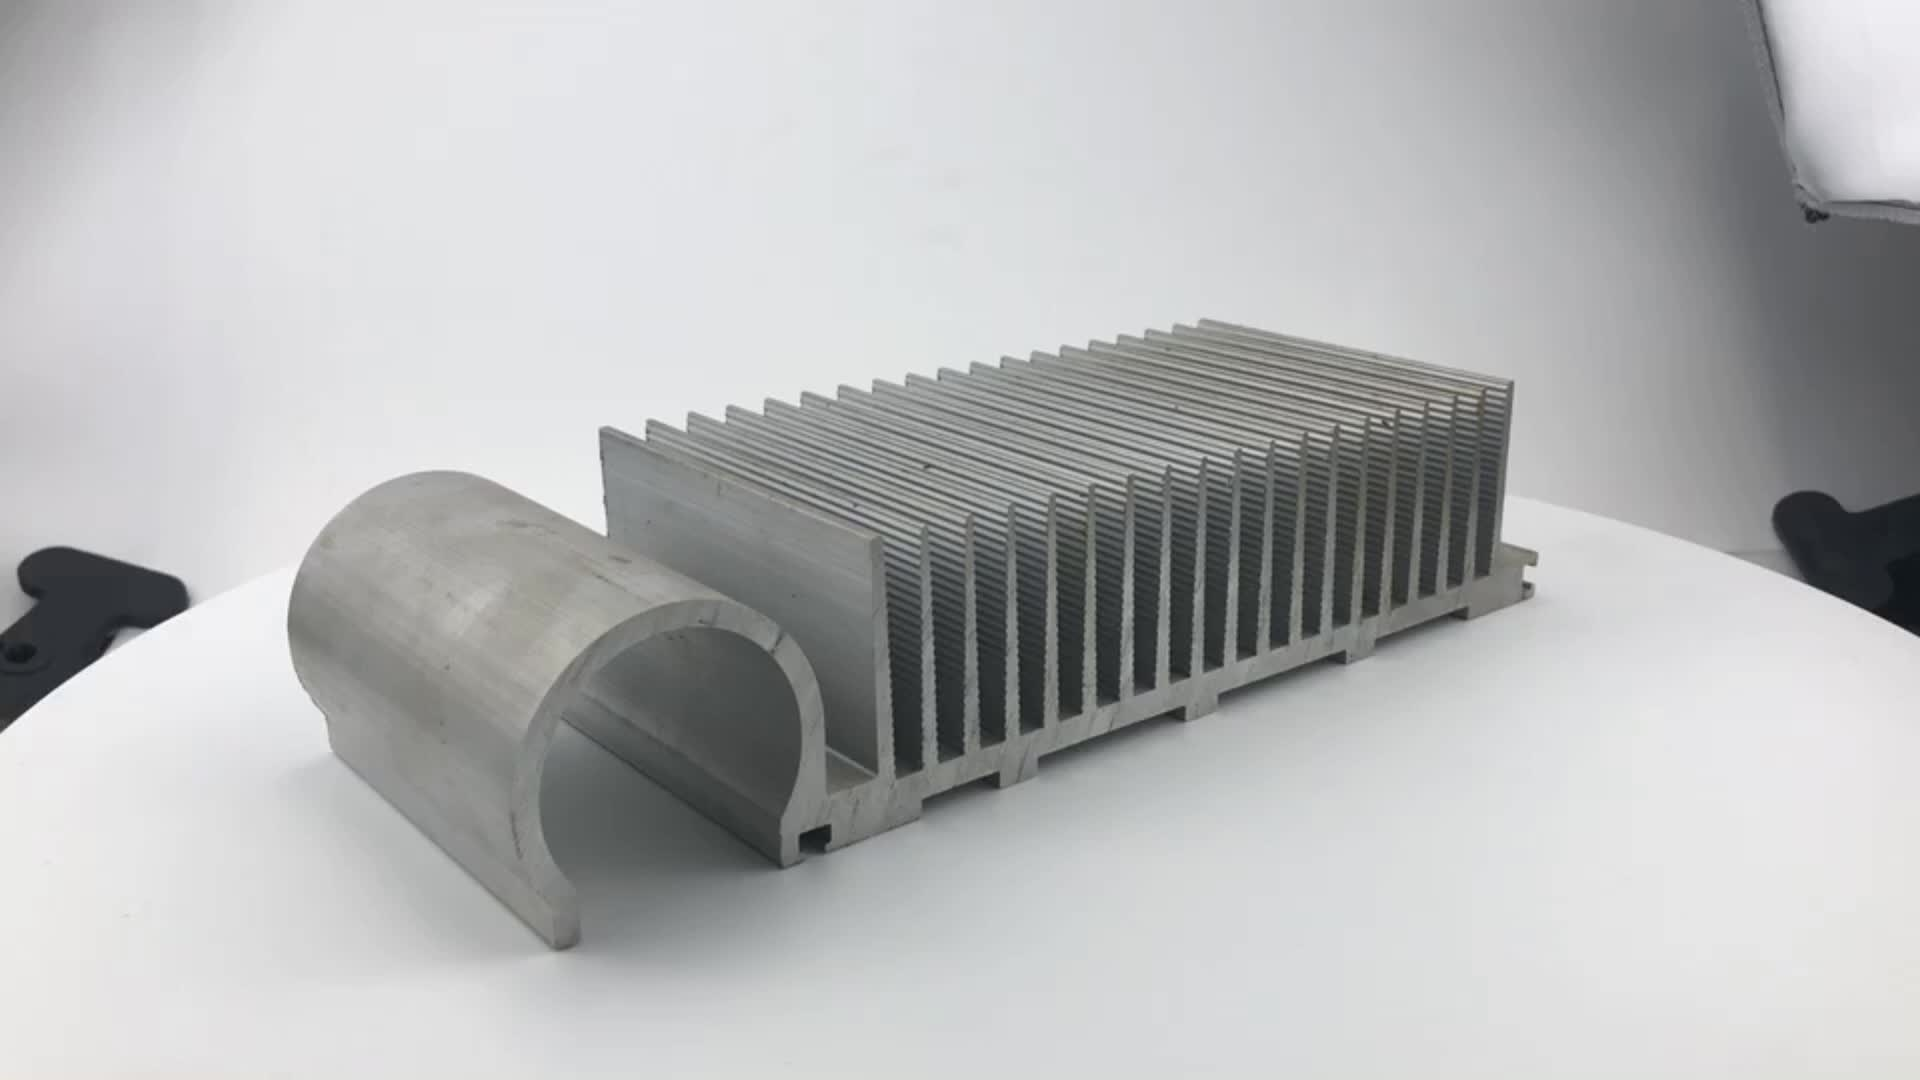 China Factory Large size amplifier water cooling extruded aluminum heatsink for USA led lamp